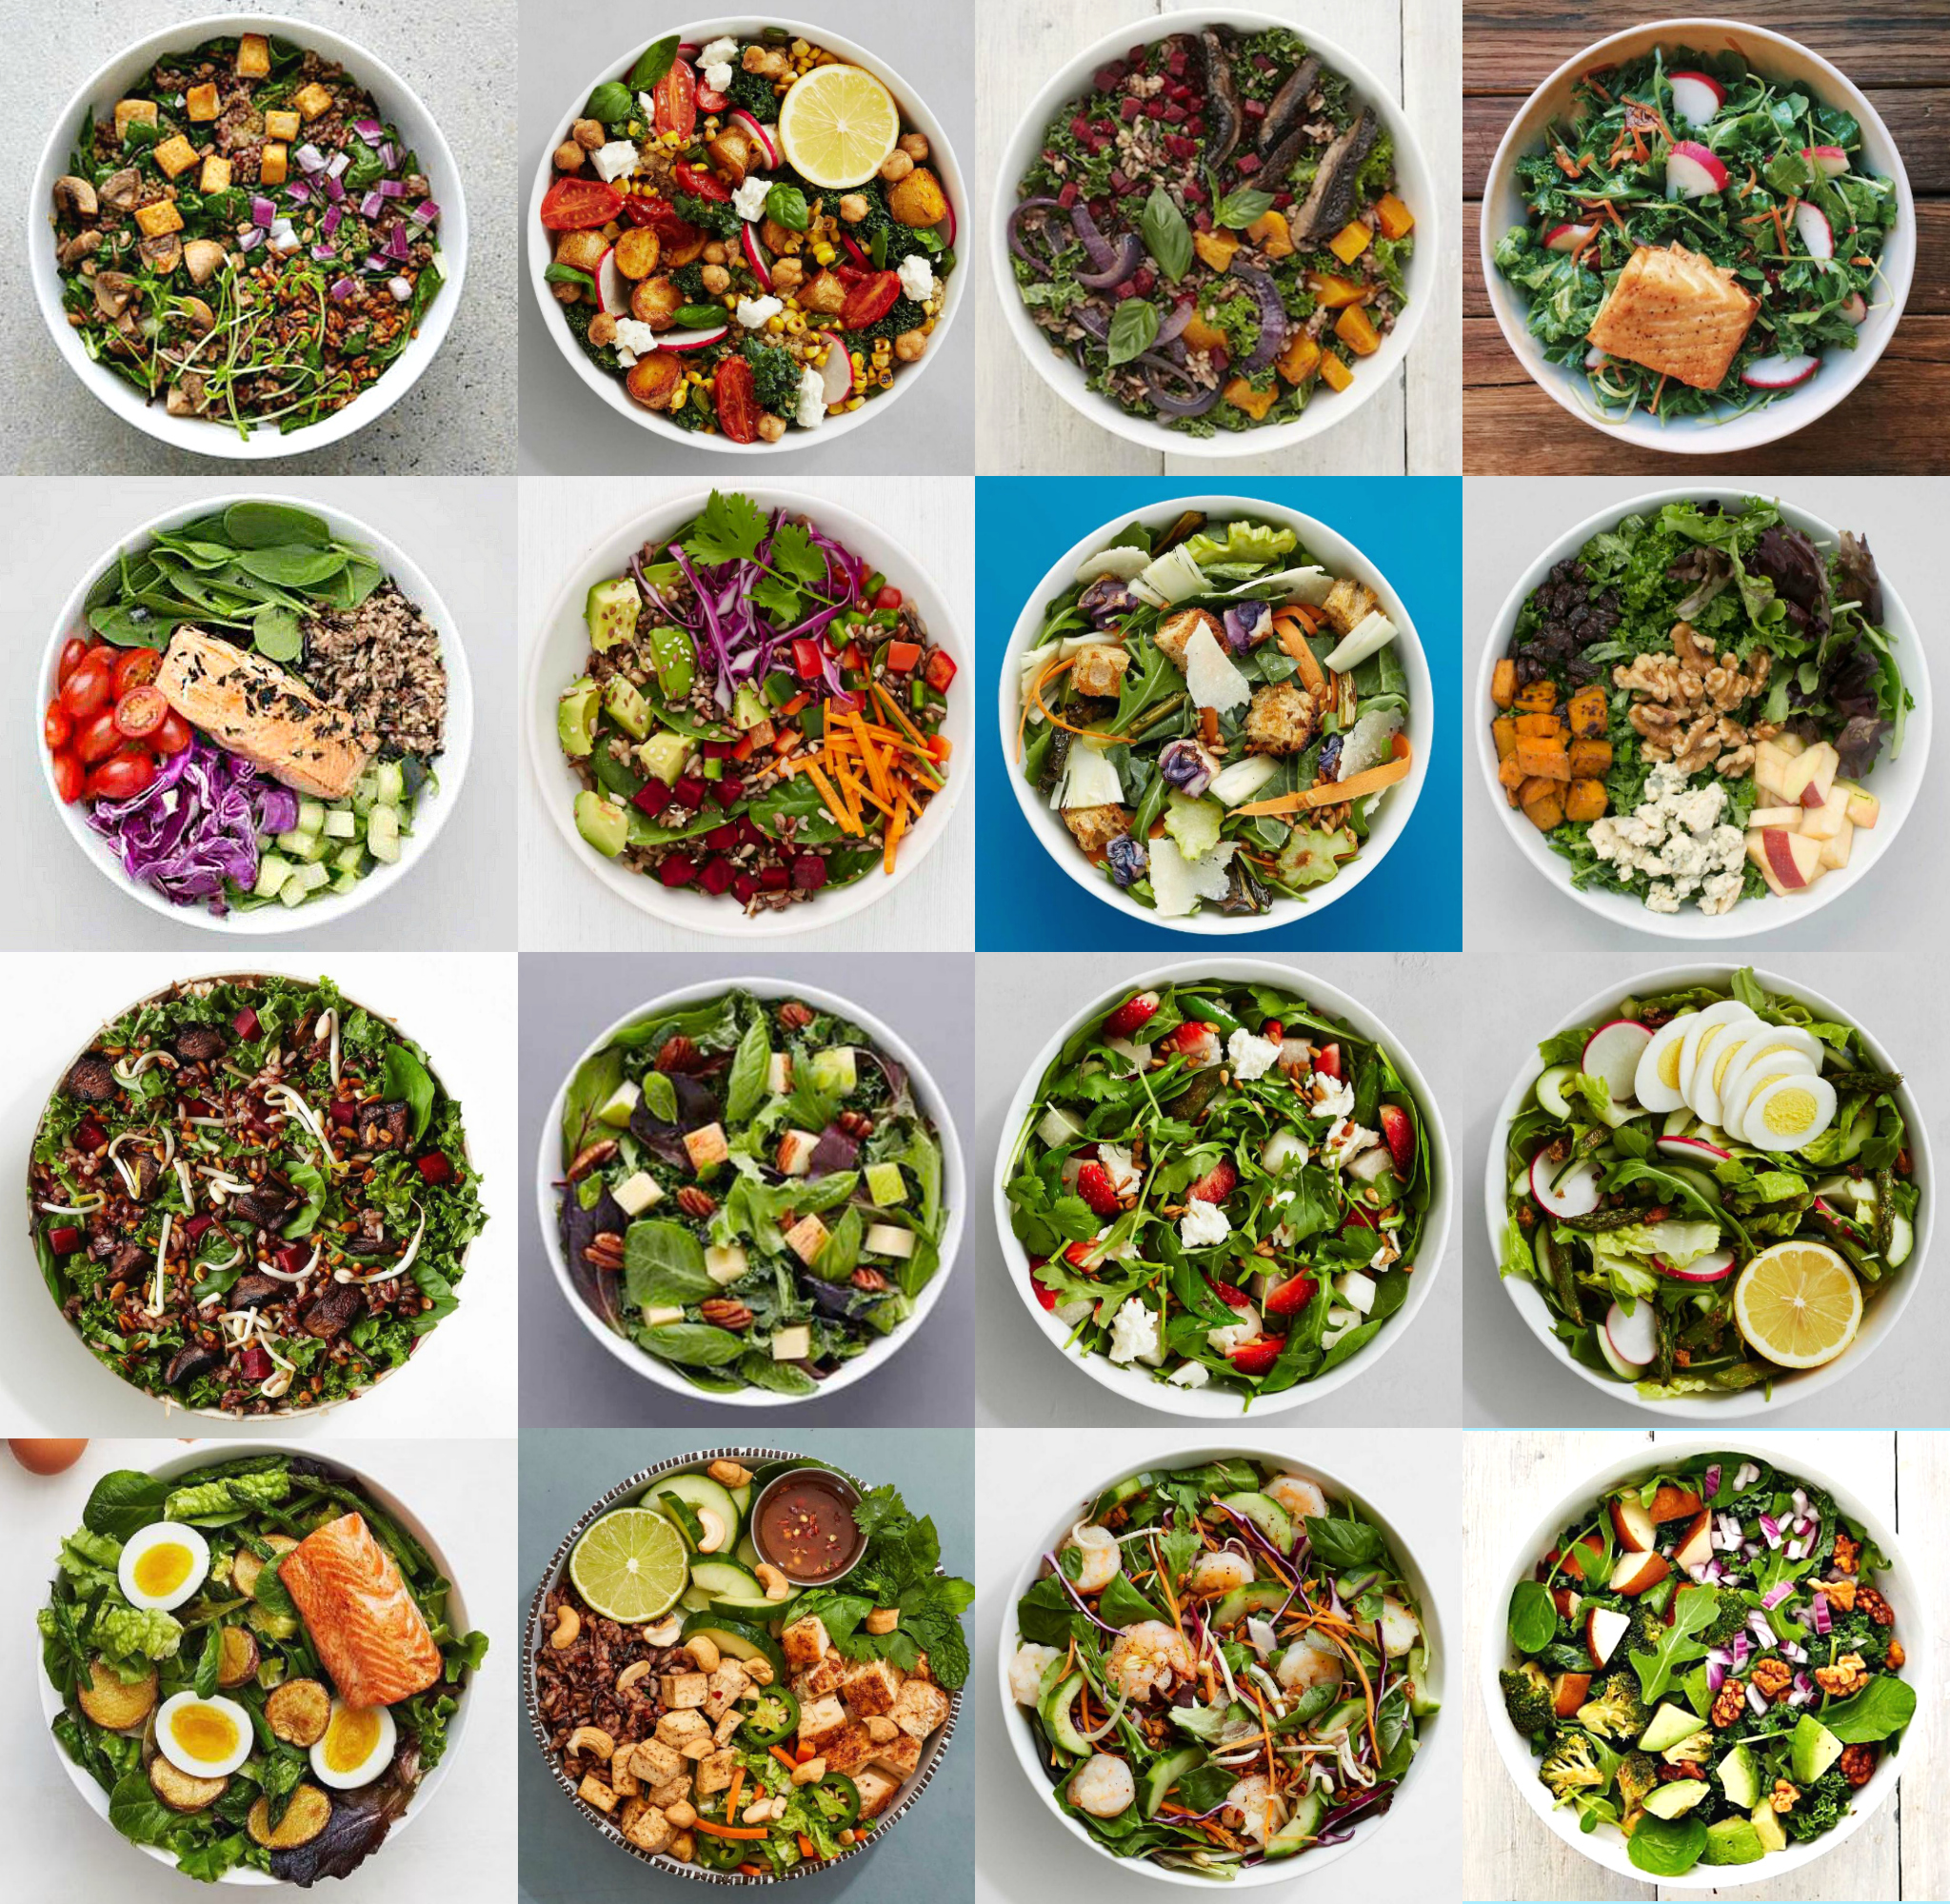 Here's 18 super healthy sweetgreen salads that are around 500 calories (part 1)